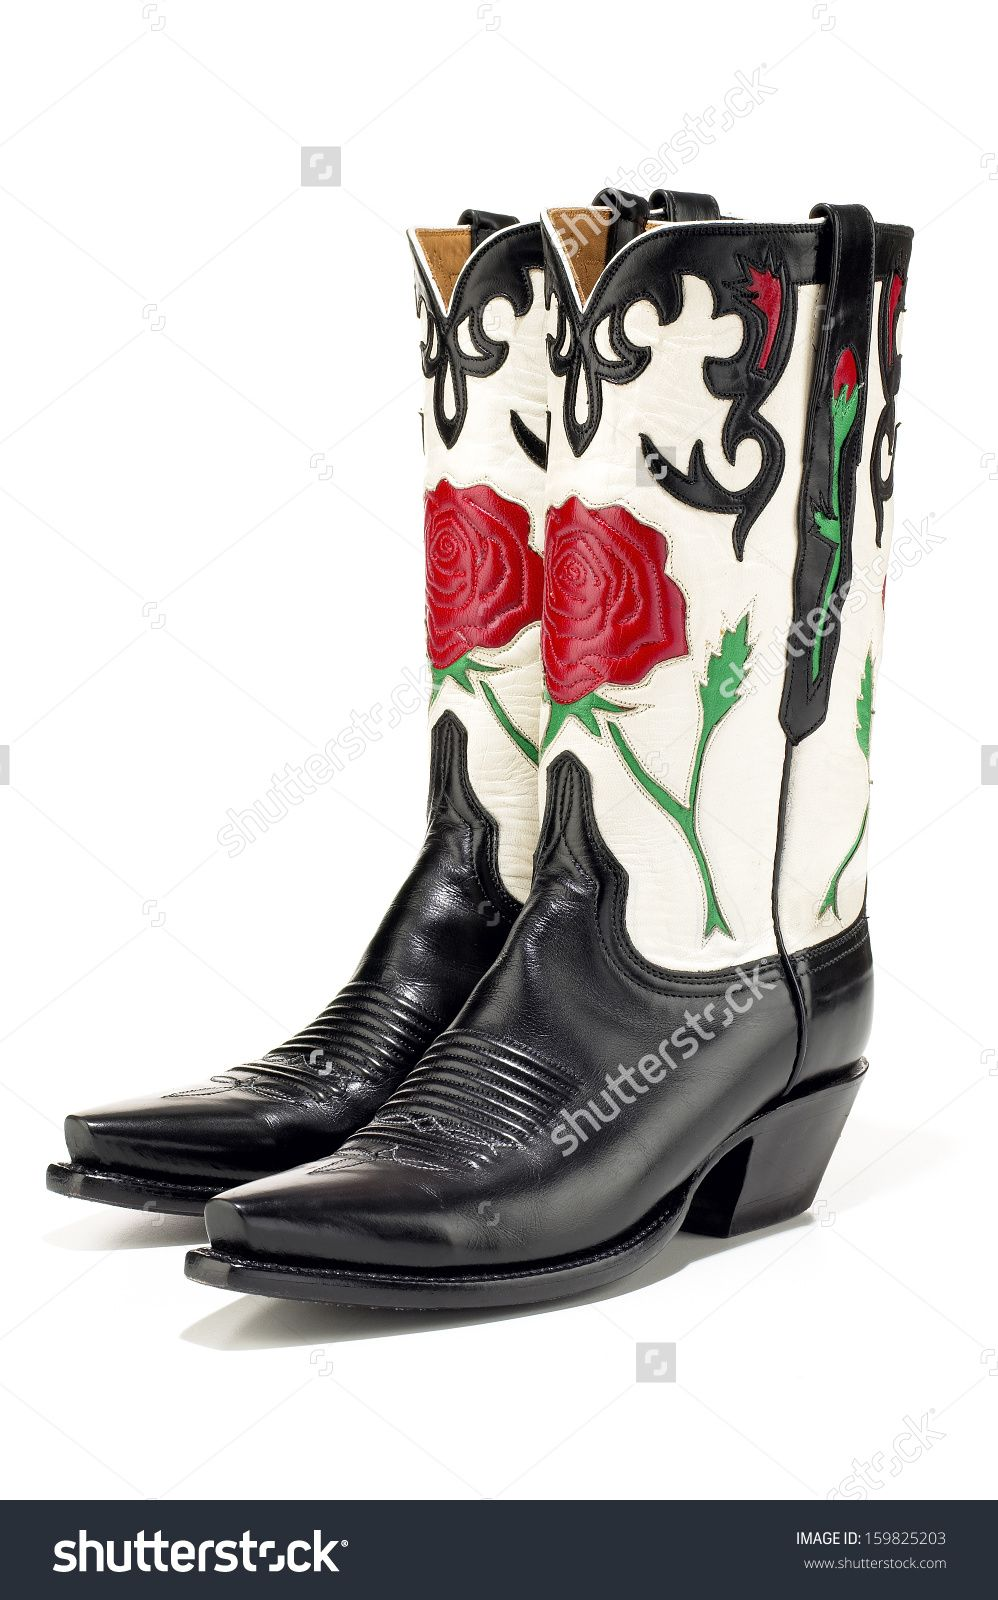 Image result for black and rose cowboy boots